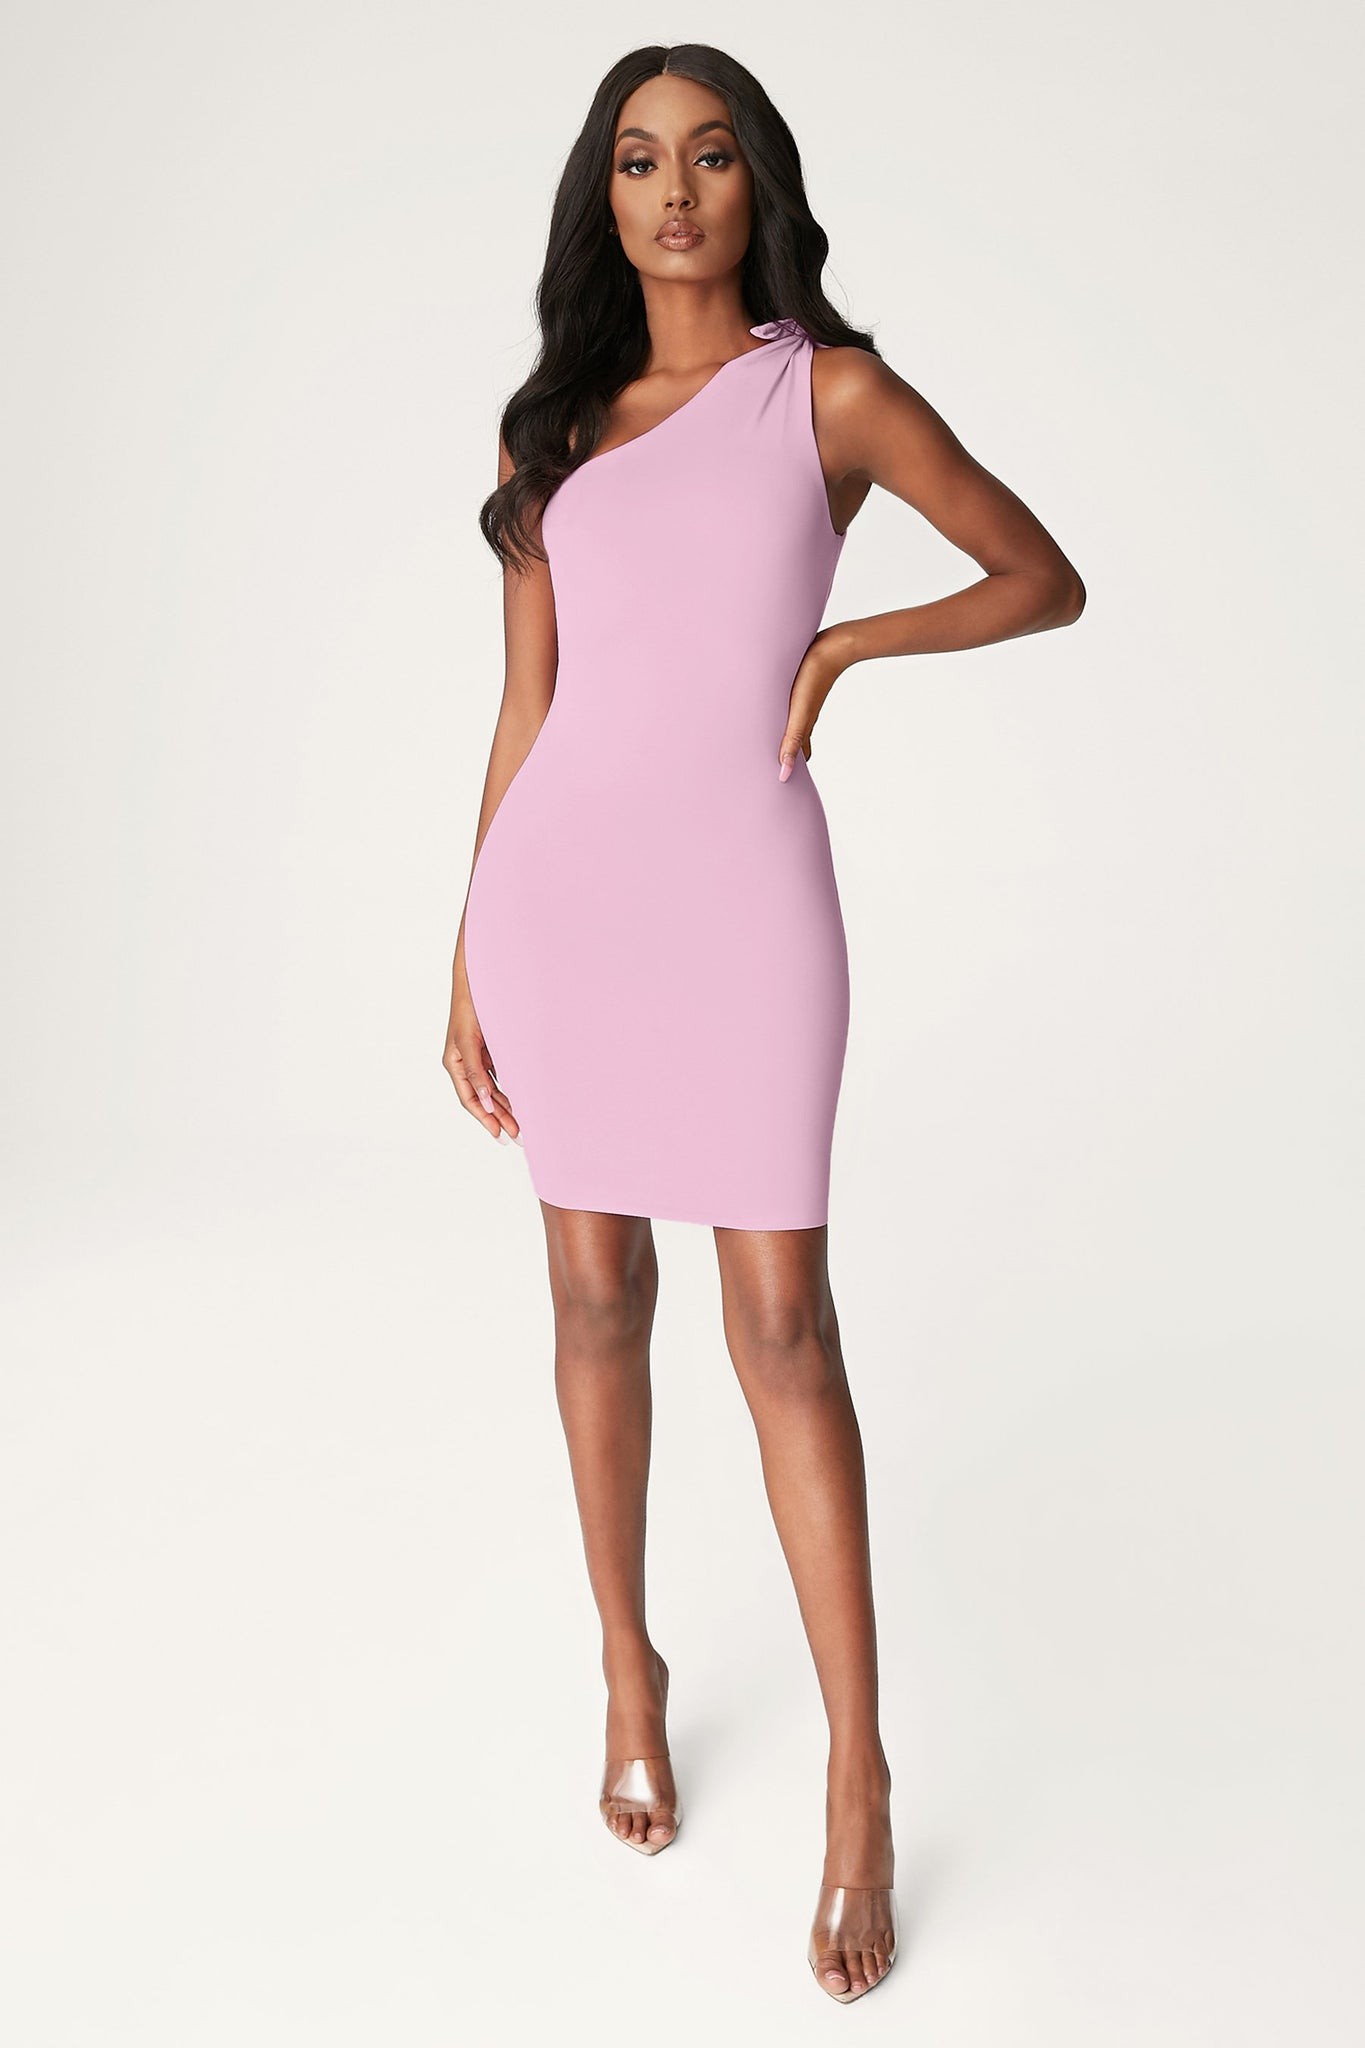 Rosetta Knotted One Shoulder Mini Dress - Pink - MESHKI